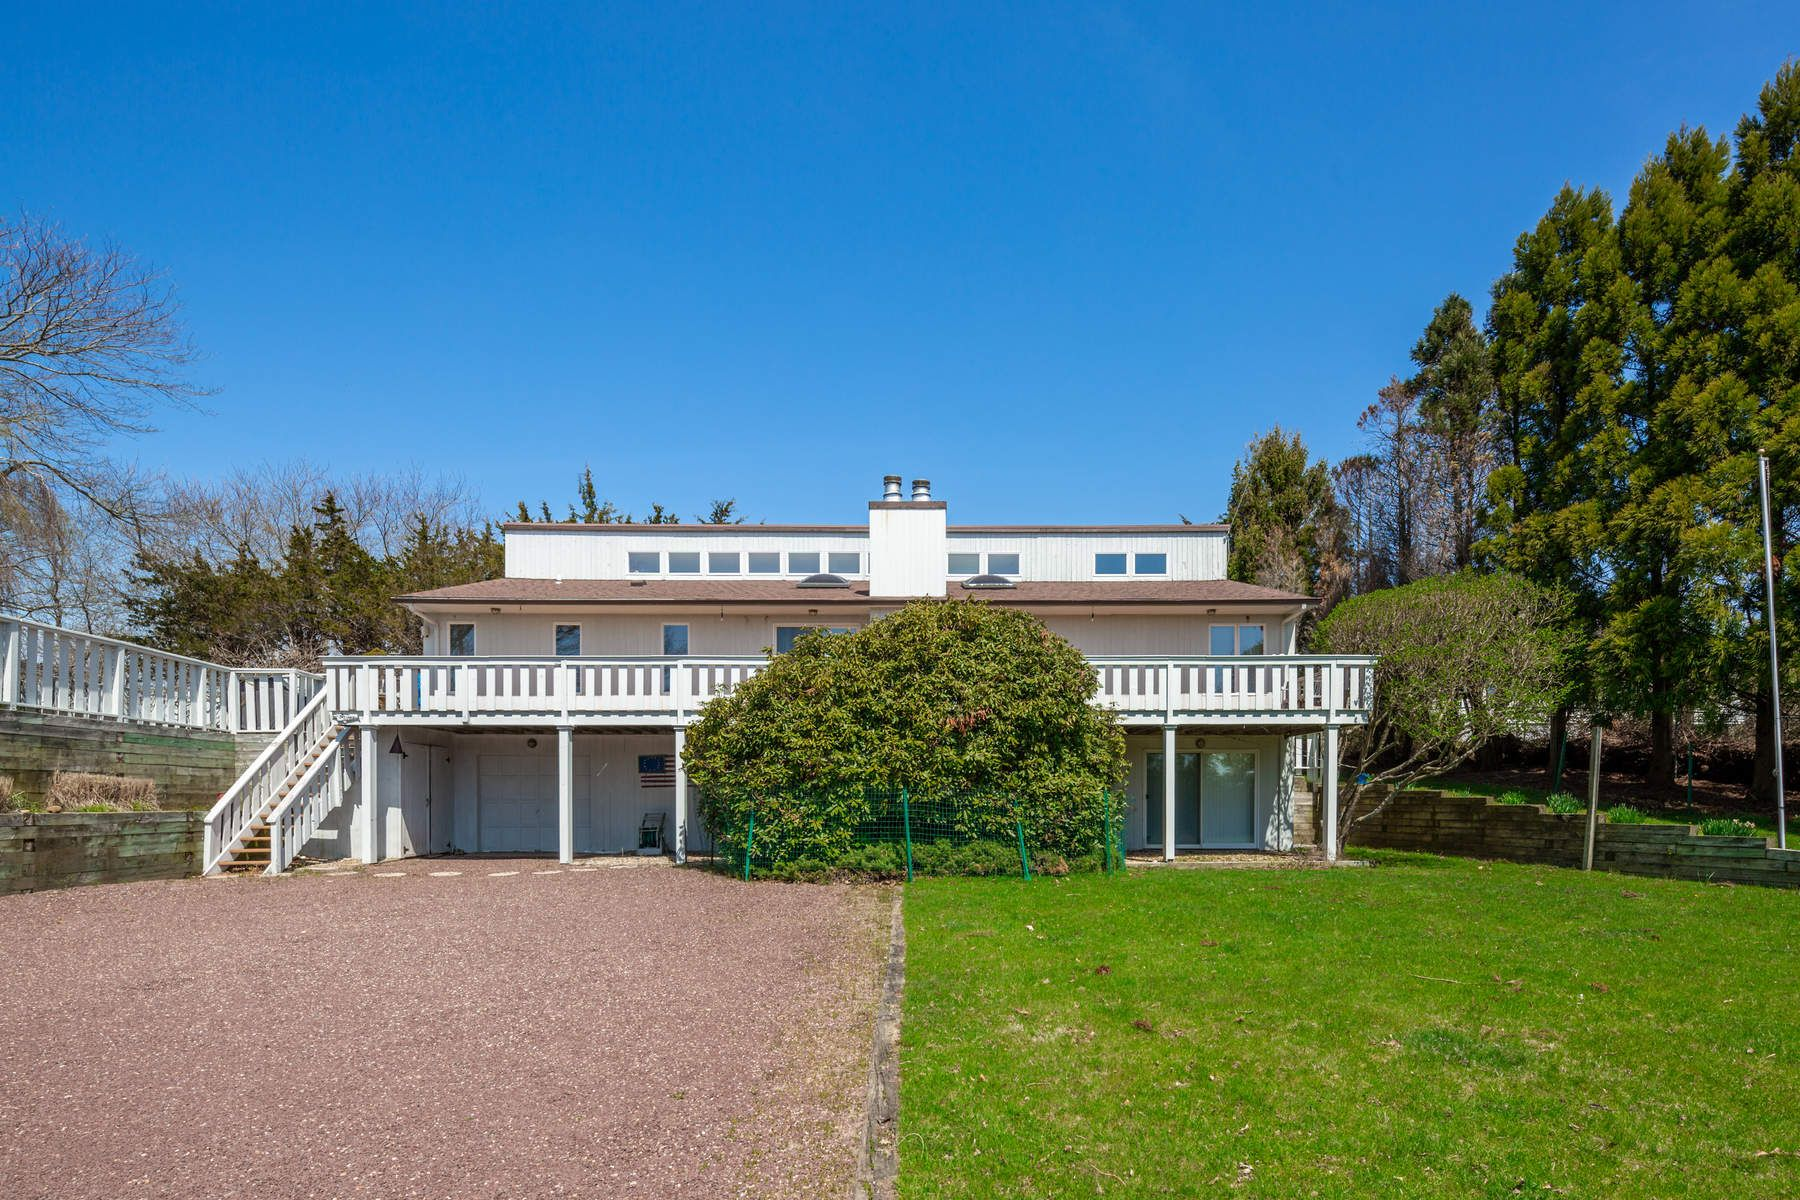 Single Family Home for Sale at Elevated Montauk Home 14 Freemont Road Montauk, New York 11954 United States